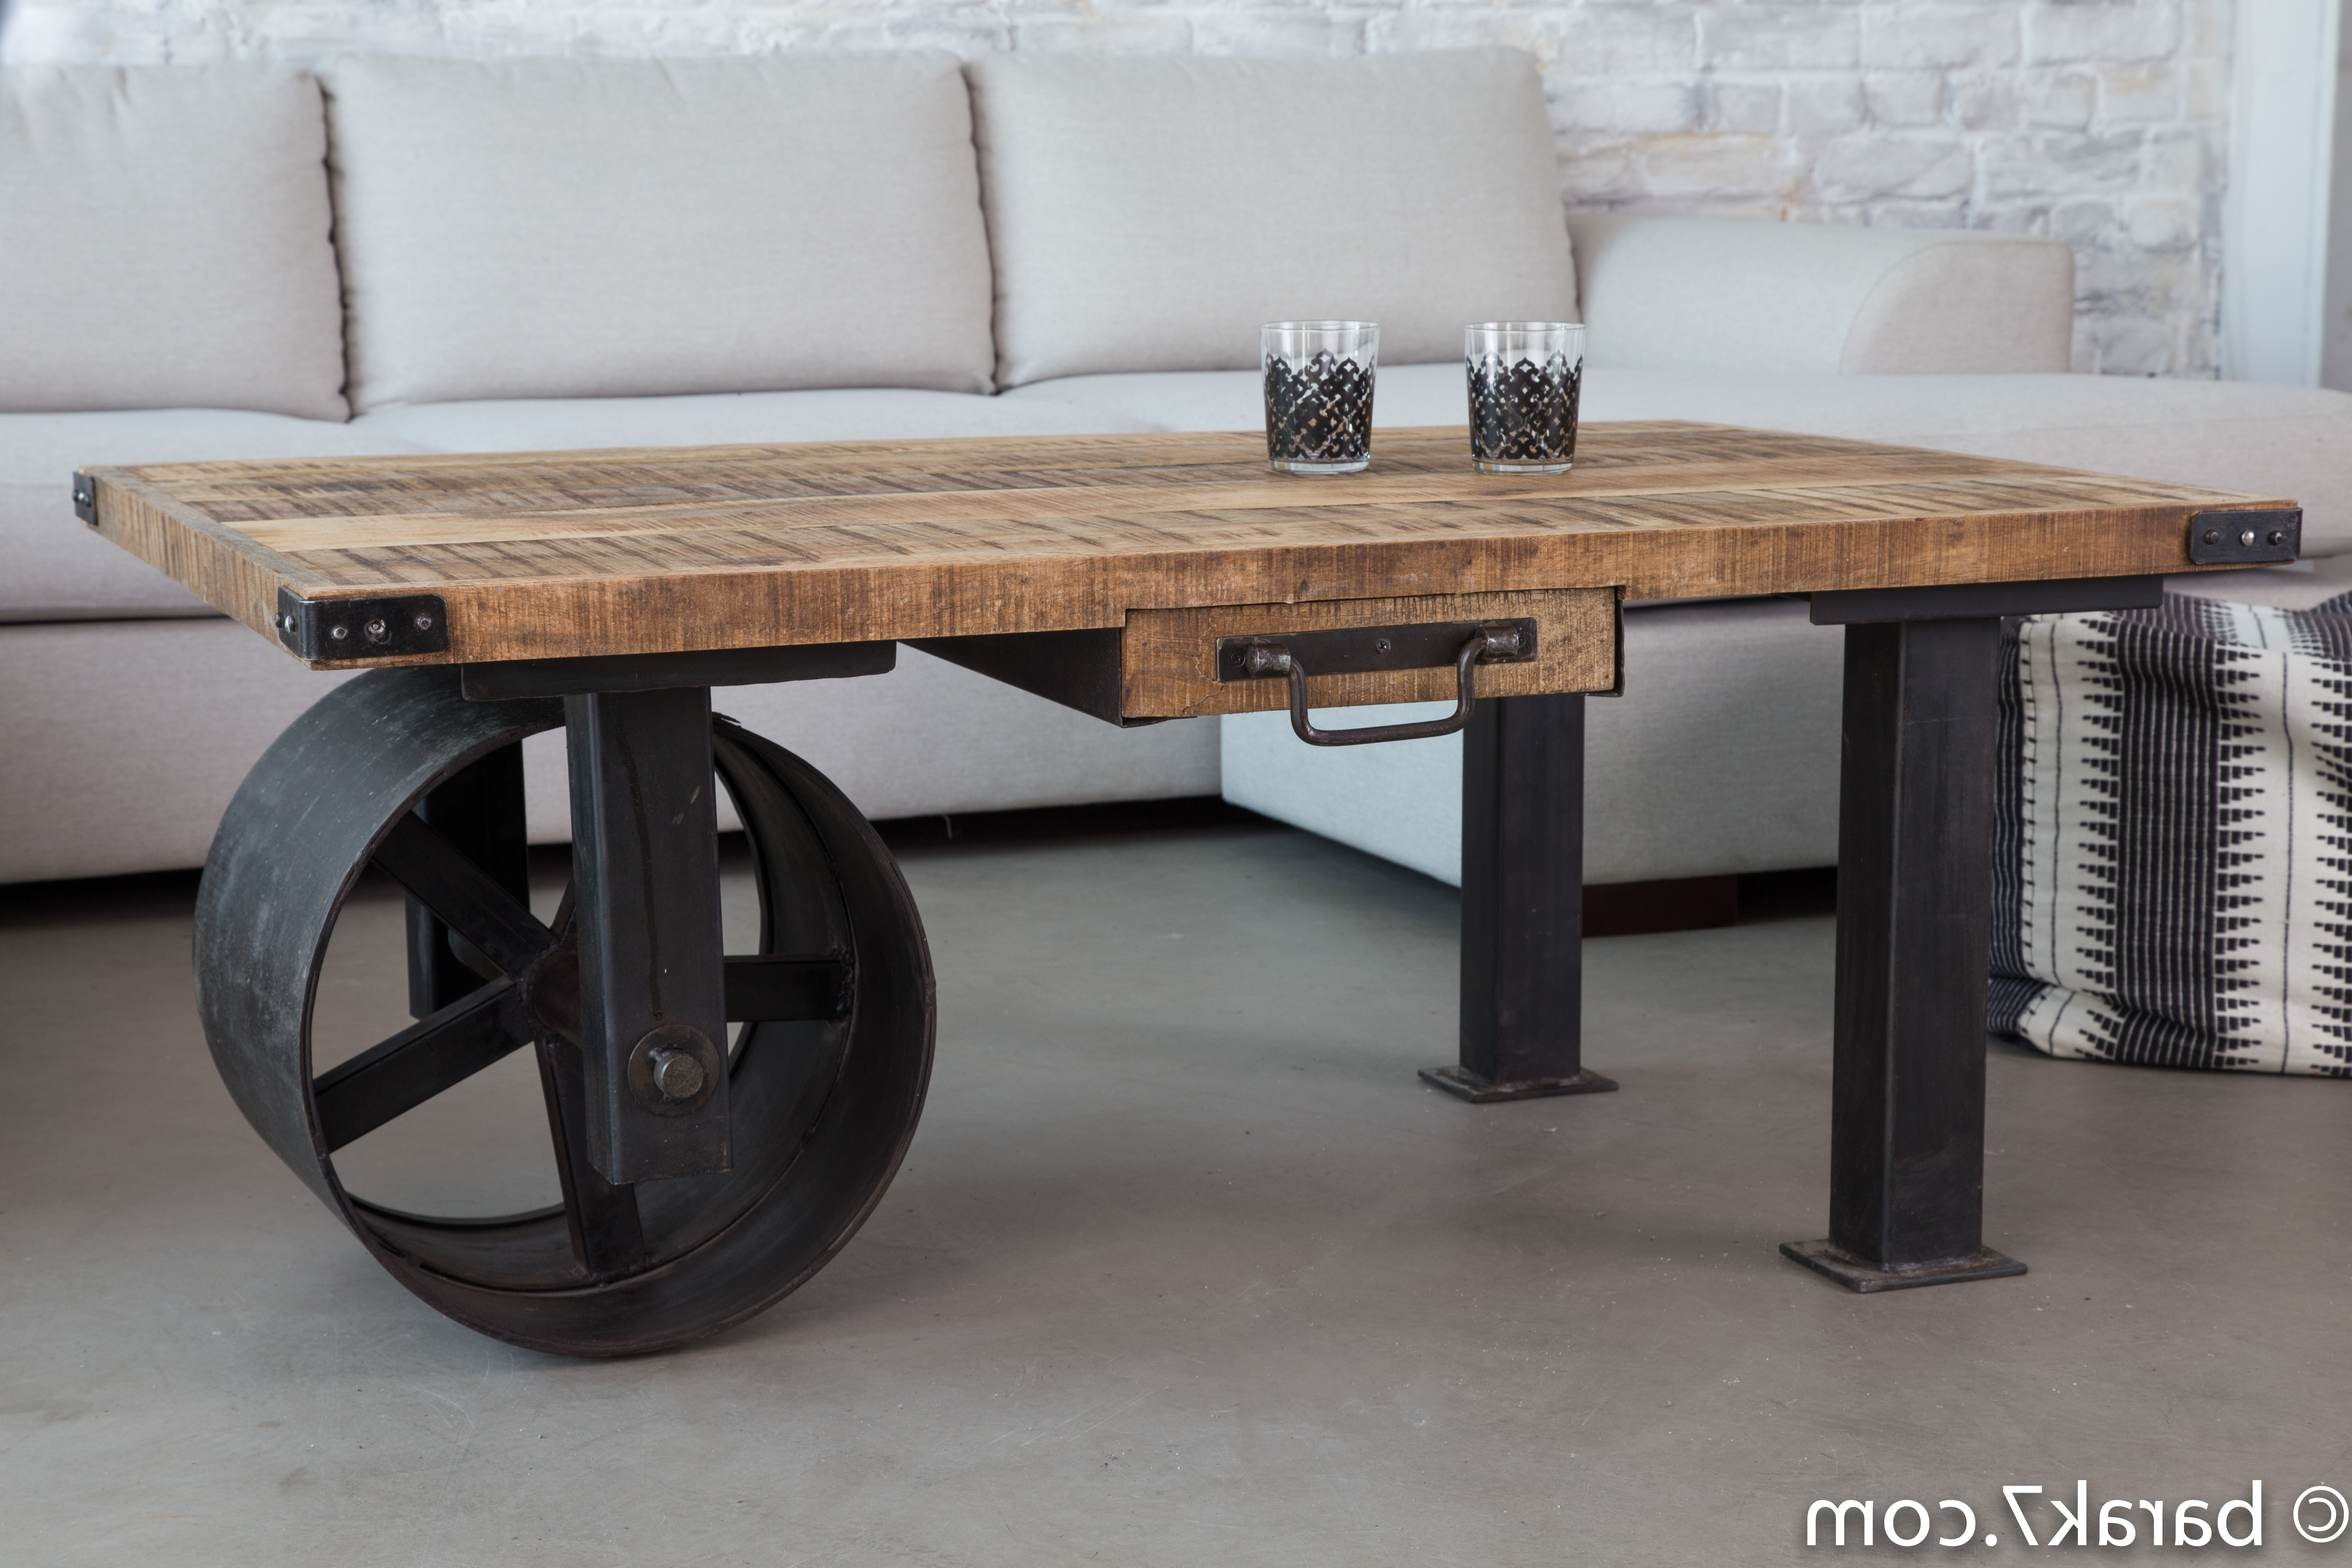 New Industrial Style Furniture Range From Barak'7 – The Art Of Within 2018 Iron Wood Coffee Tables With Wheels (View 11 of 20)